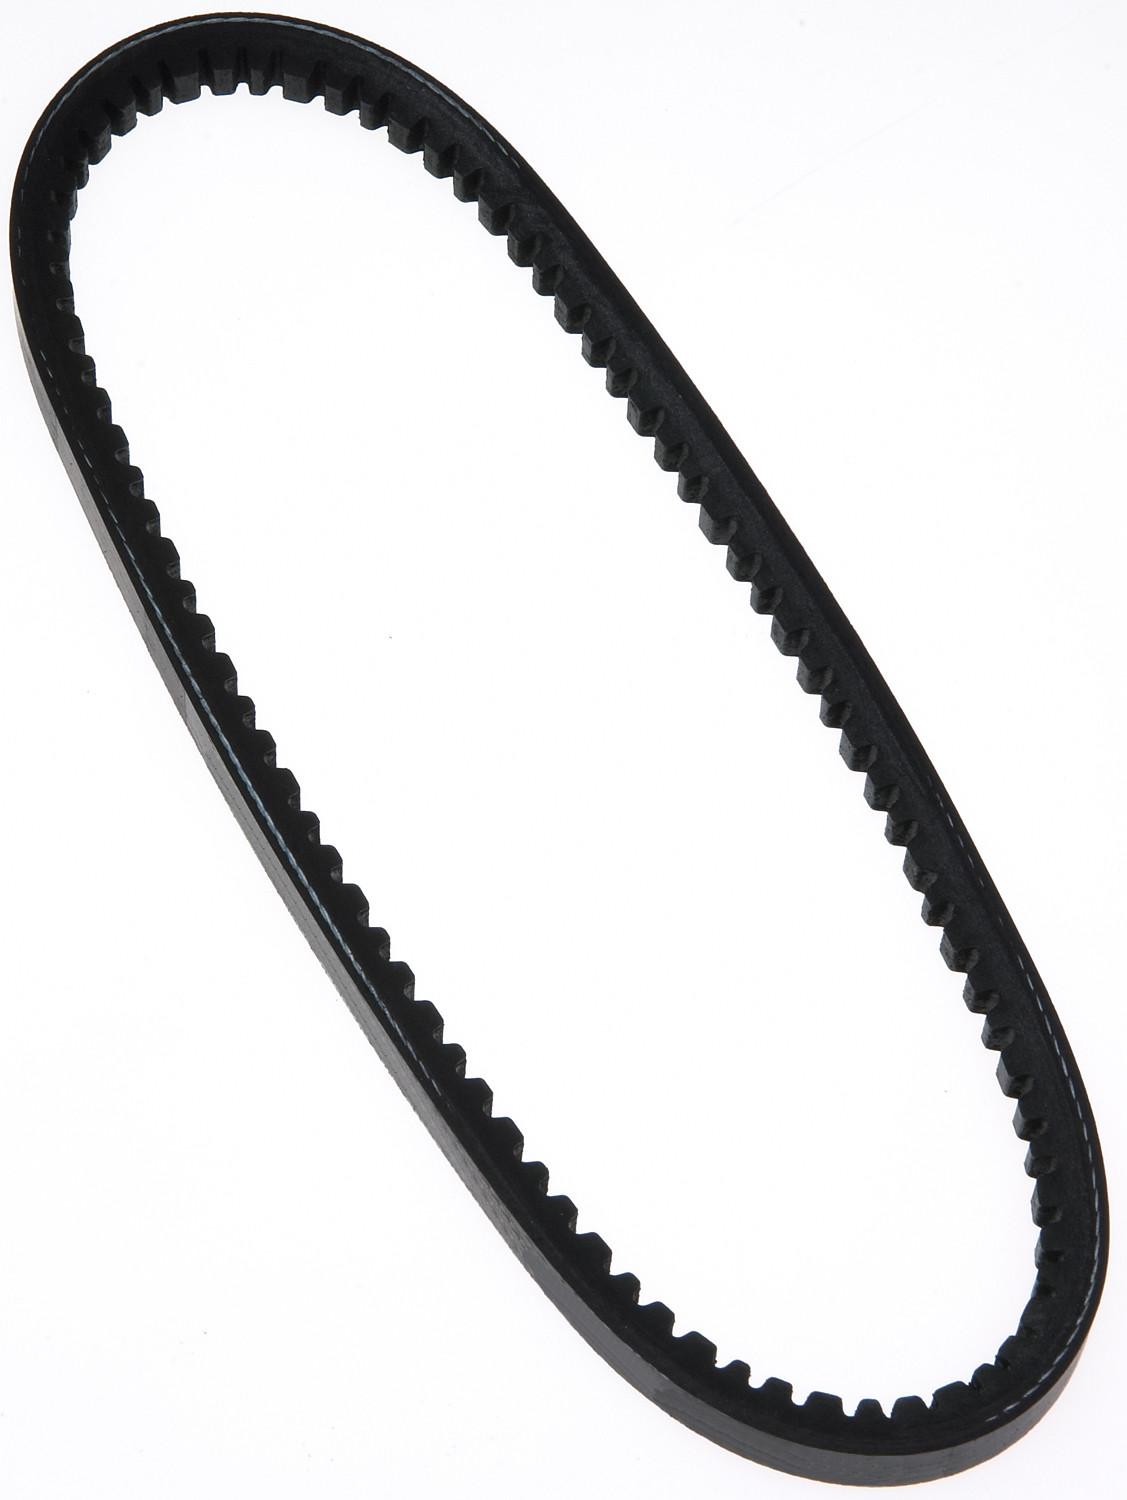 ROADMAX - High Capacity V-Belt(Standard) - RMX 17425AP